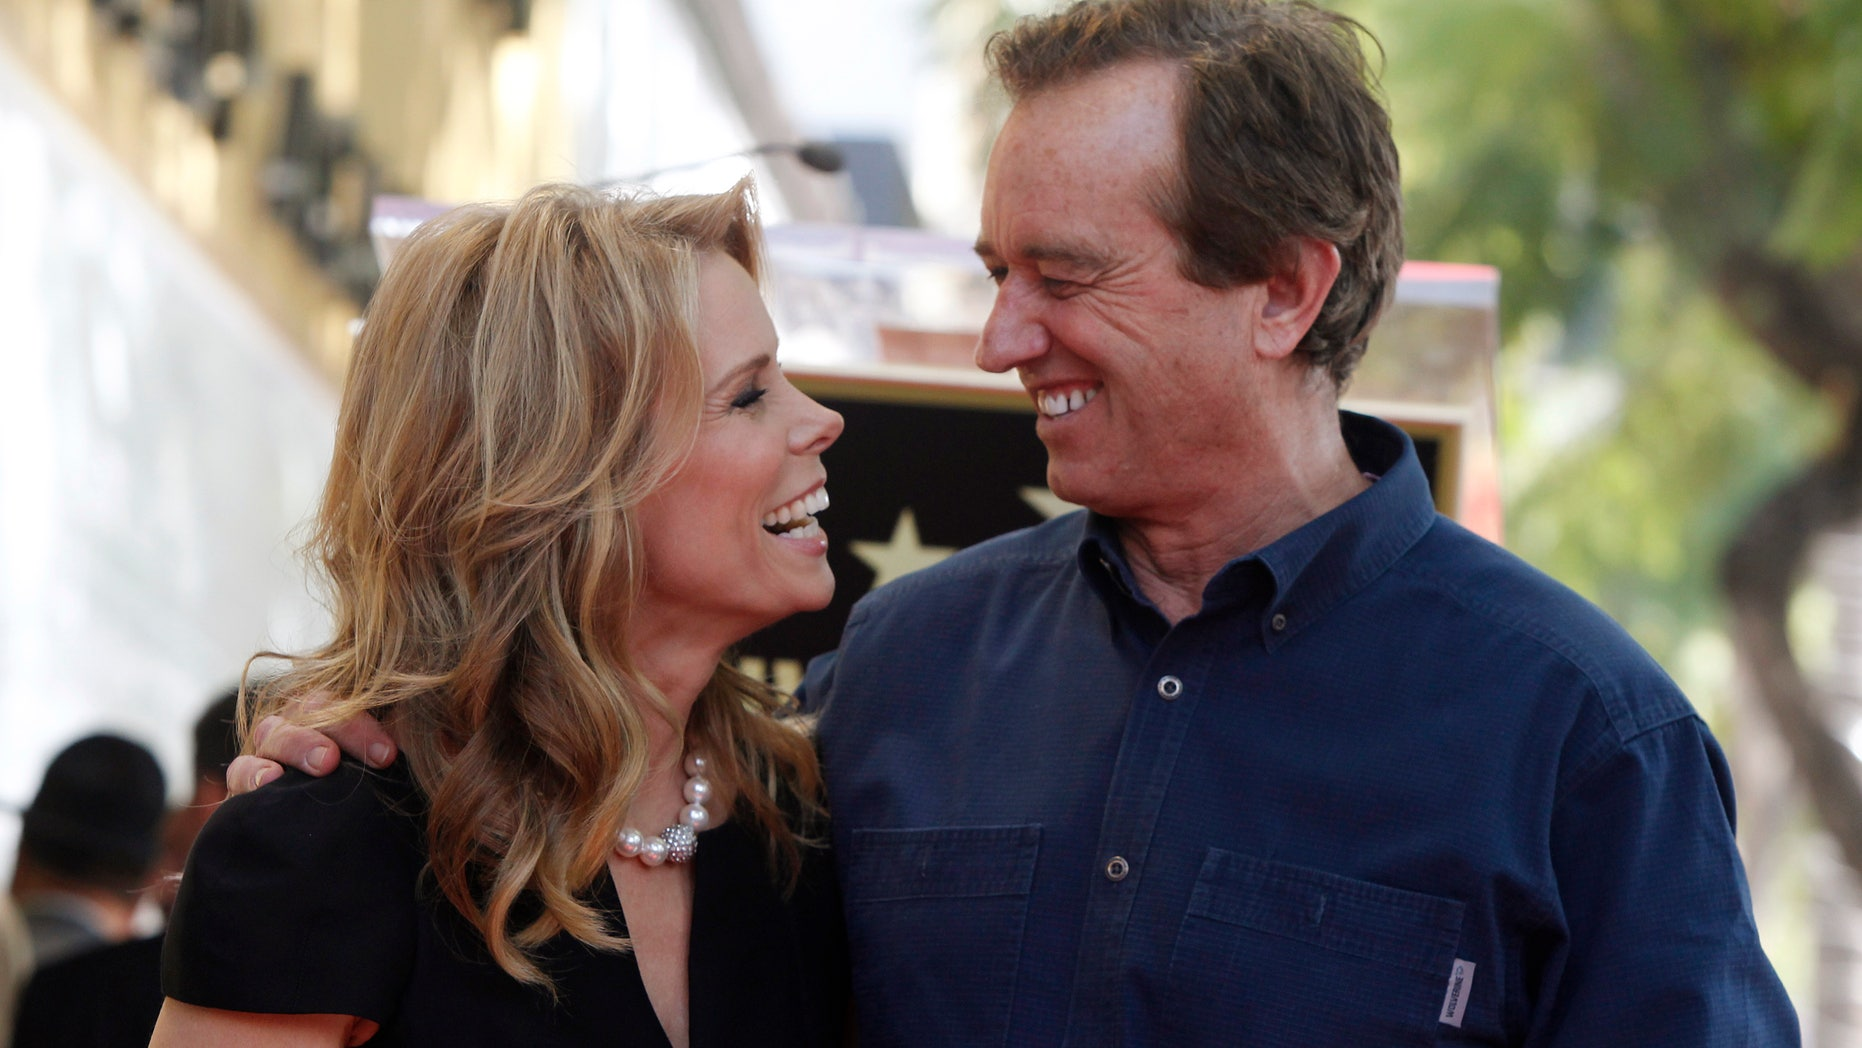 January 29, 2014. Actress Cheryl Hines (L) smiles at her boyfriend Robert F. Kennedy Jr. during ceremonies honoring Hines with a star on the Hollywood Walk of Fame in Hollywood, California.